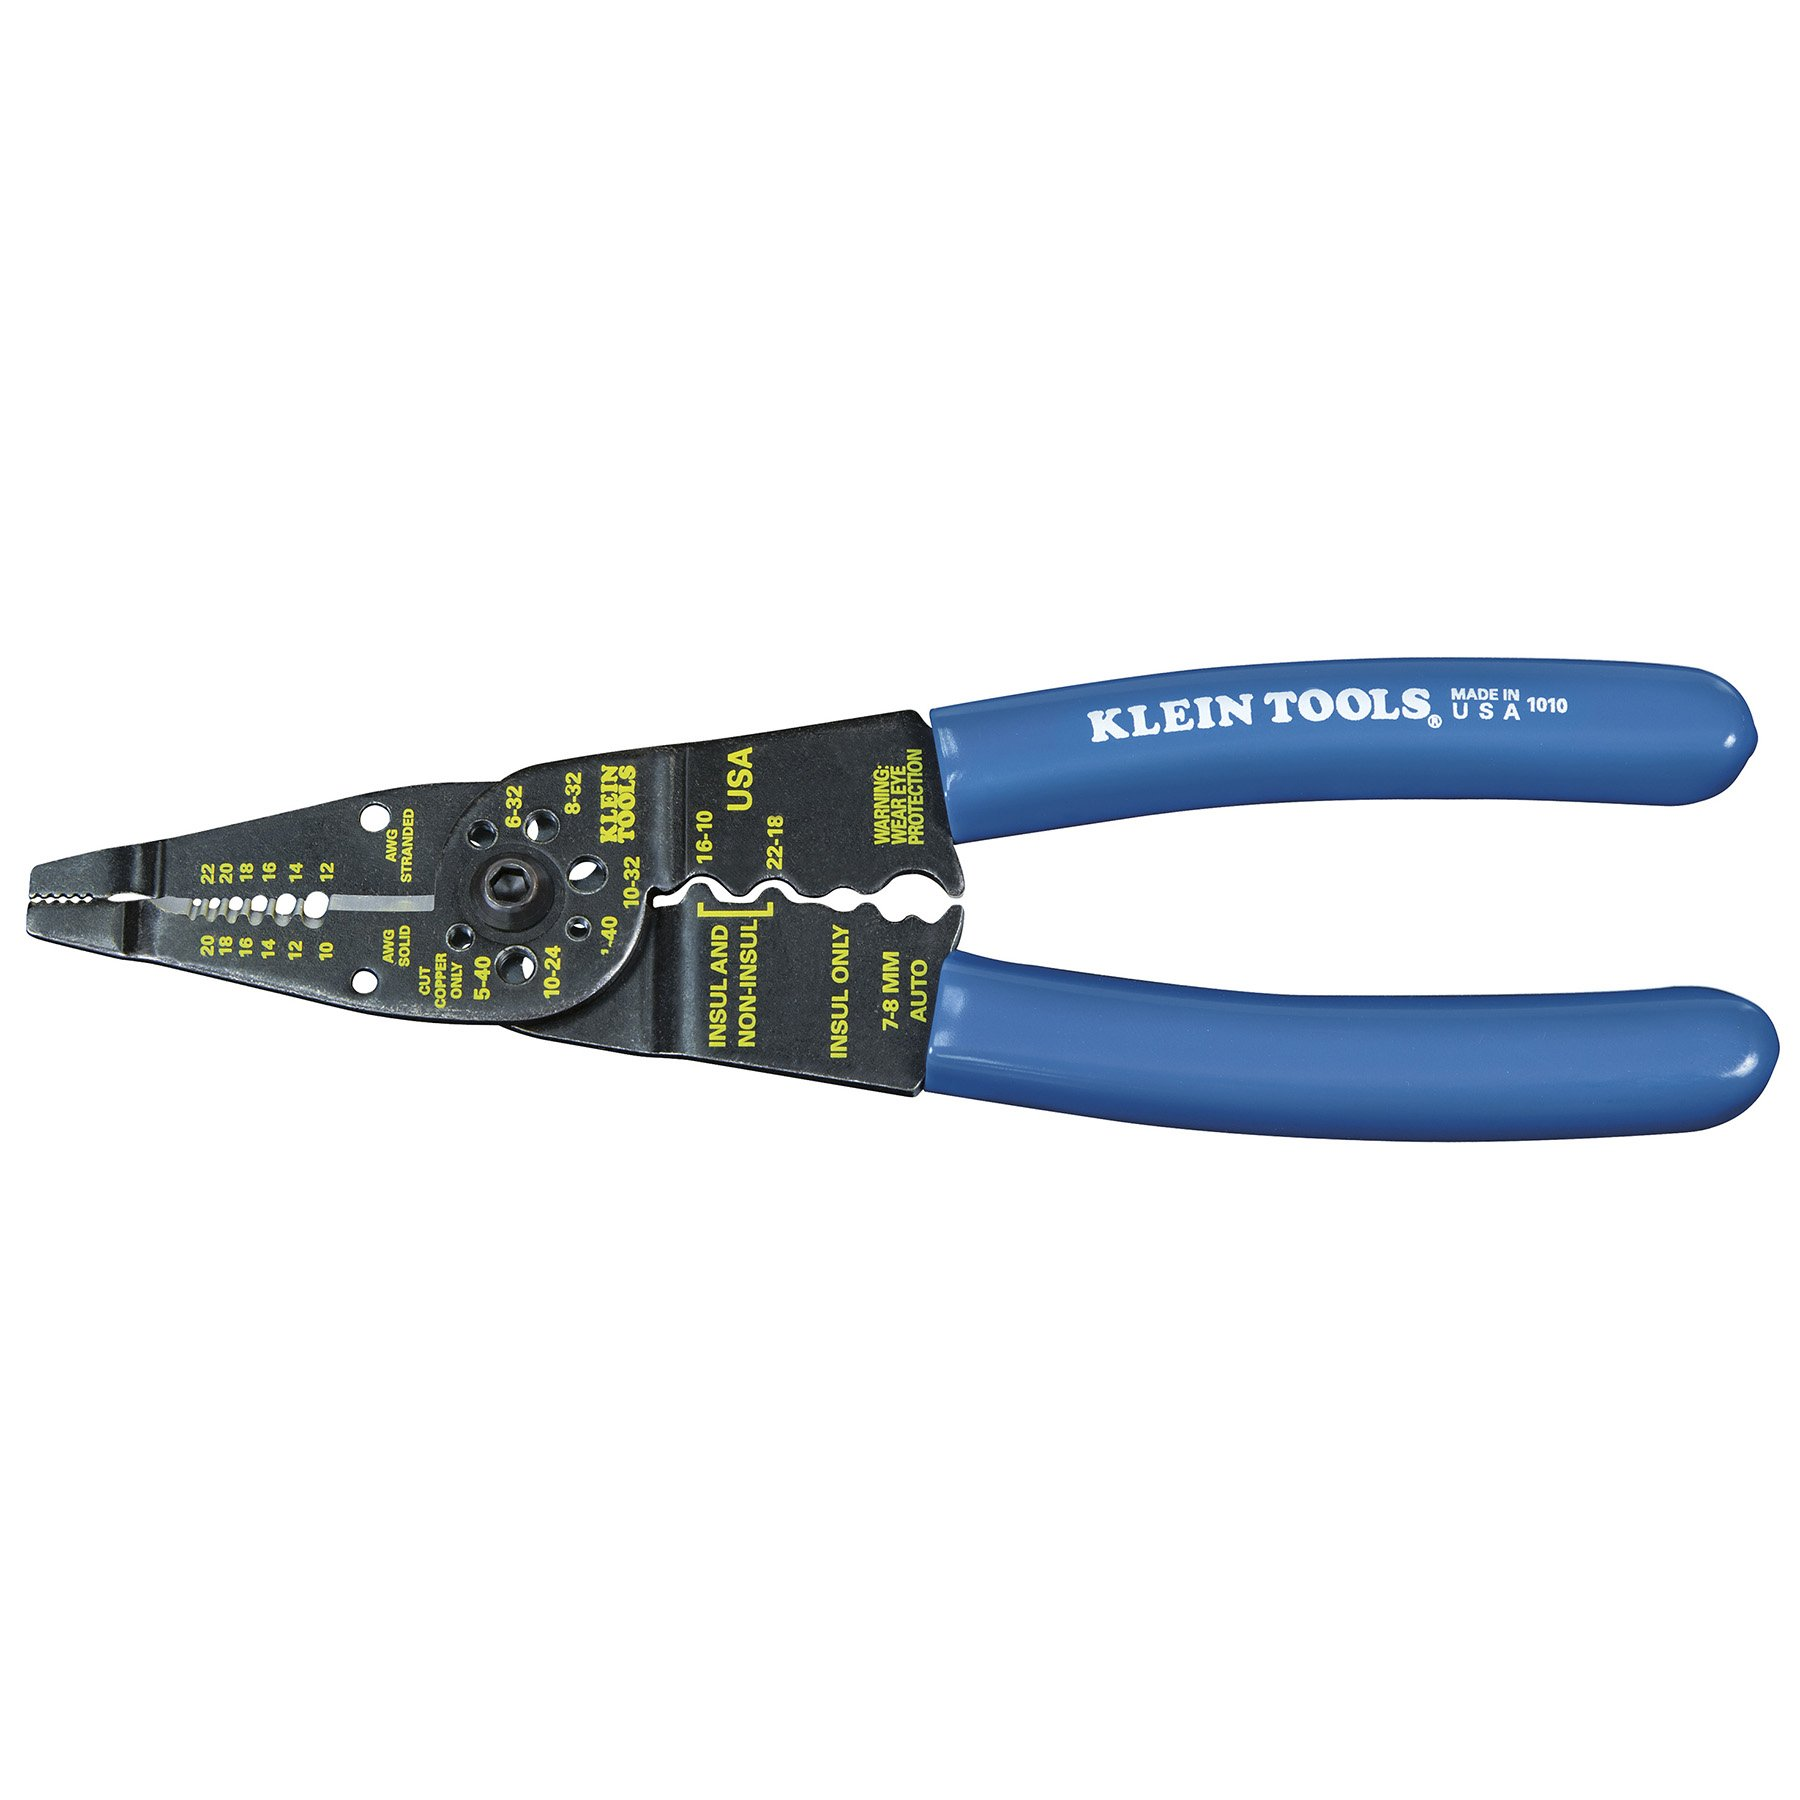 Long Nose Multi Tool Set is a Wire Cutter, Bolt Cutter, Wire Crimper and Stripper 8-Inch Long Klein Tools 1010